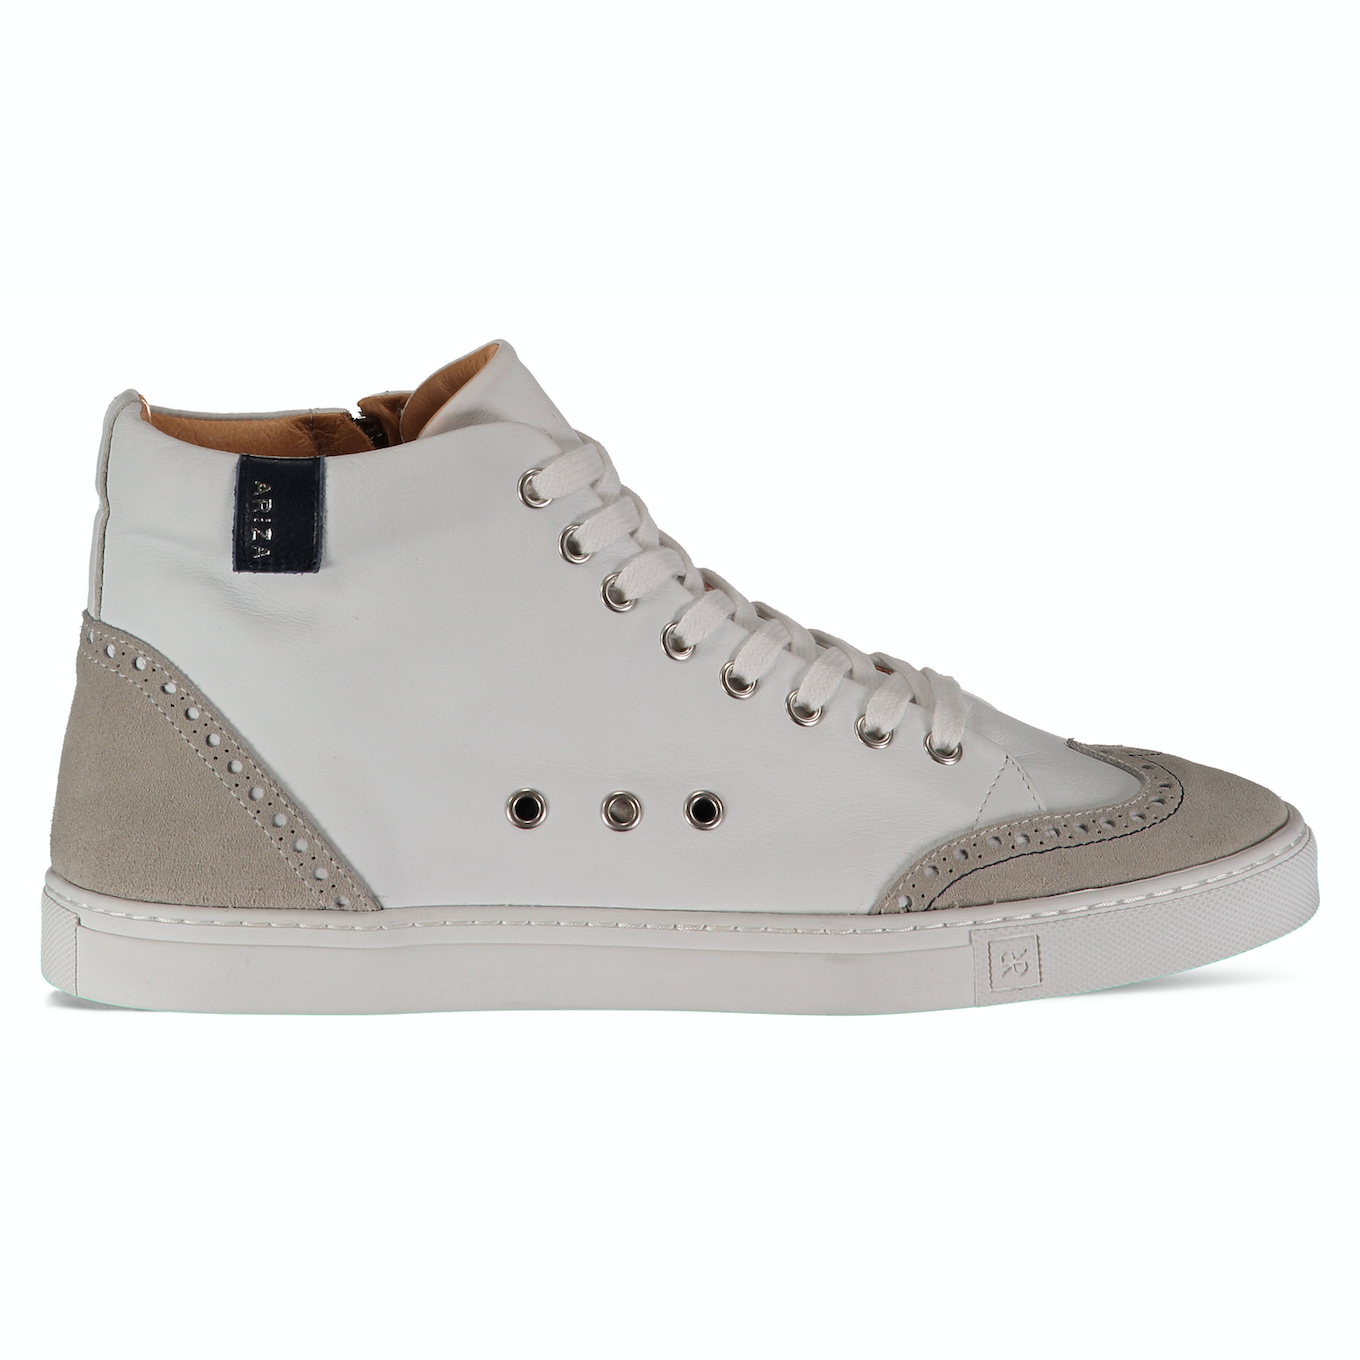 Ariza White Sneakers in Leather